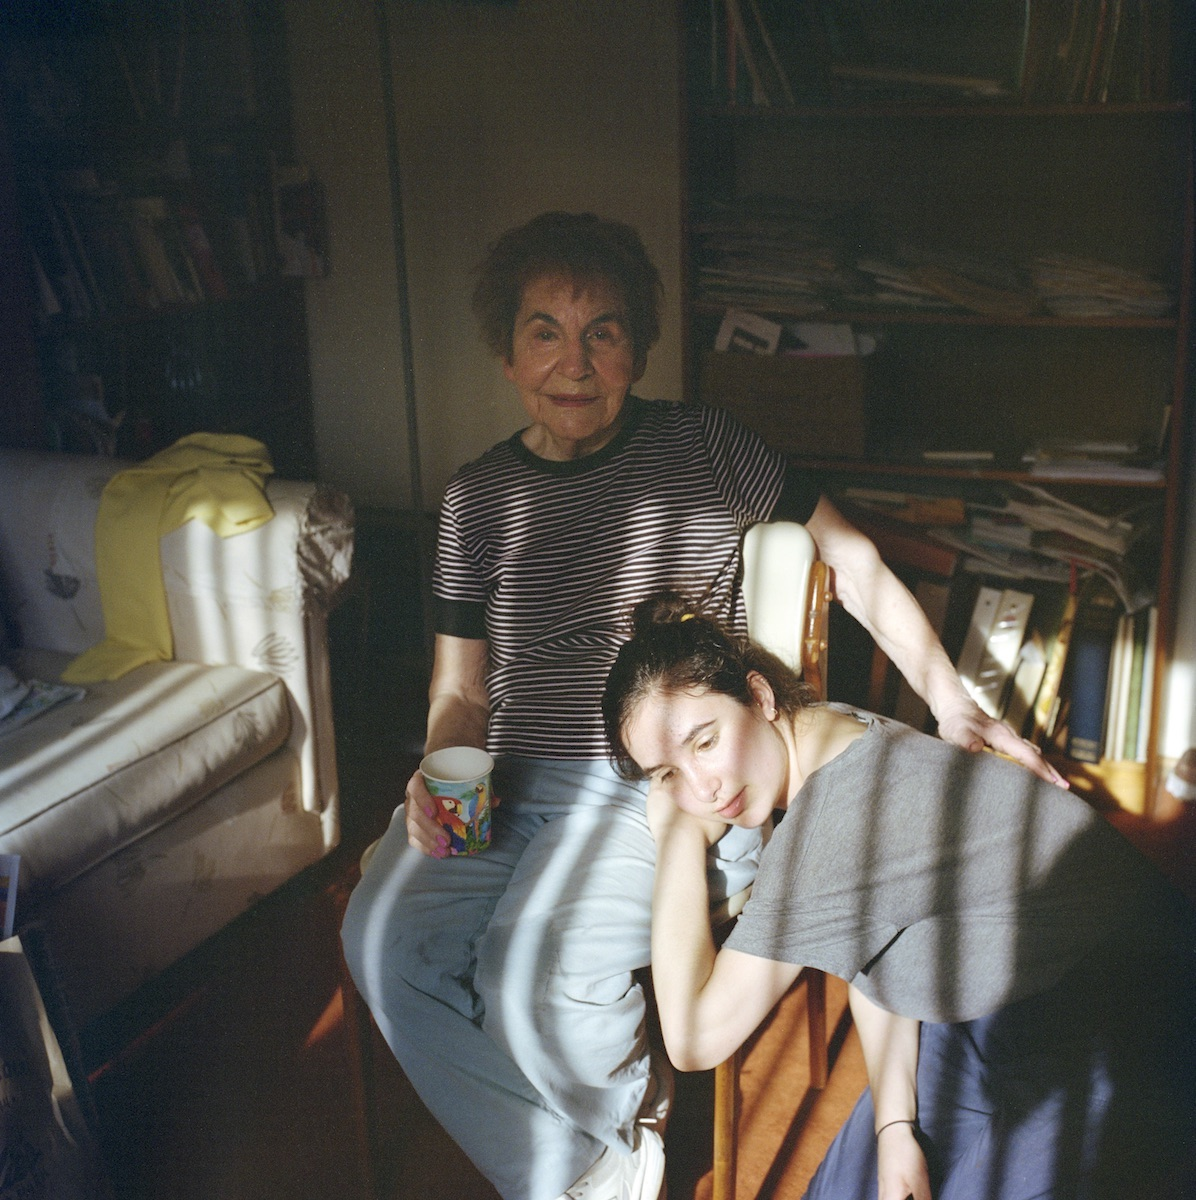 photograph of holocaust survivor and granddaughter